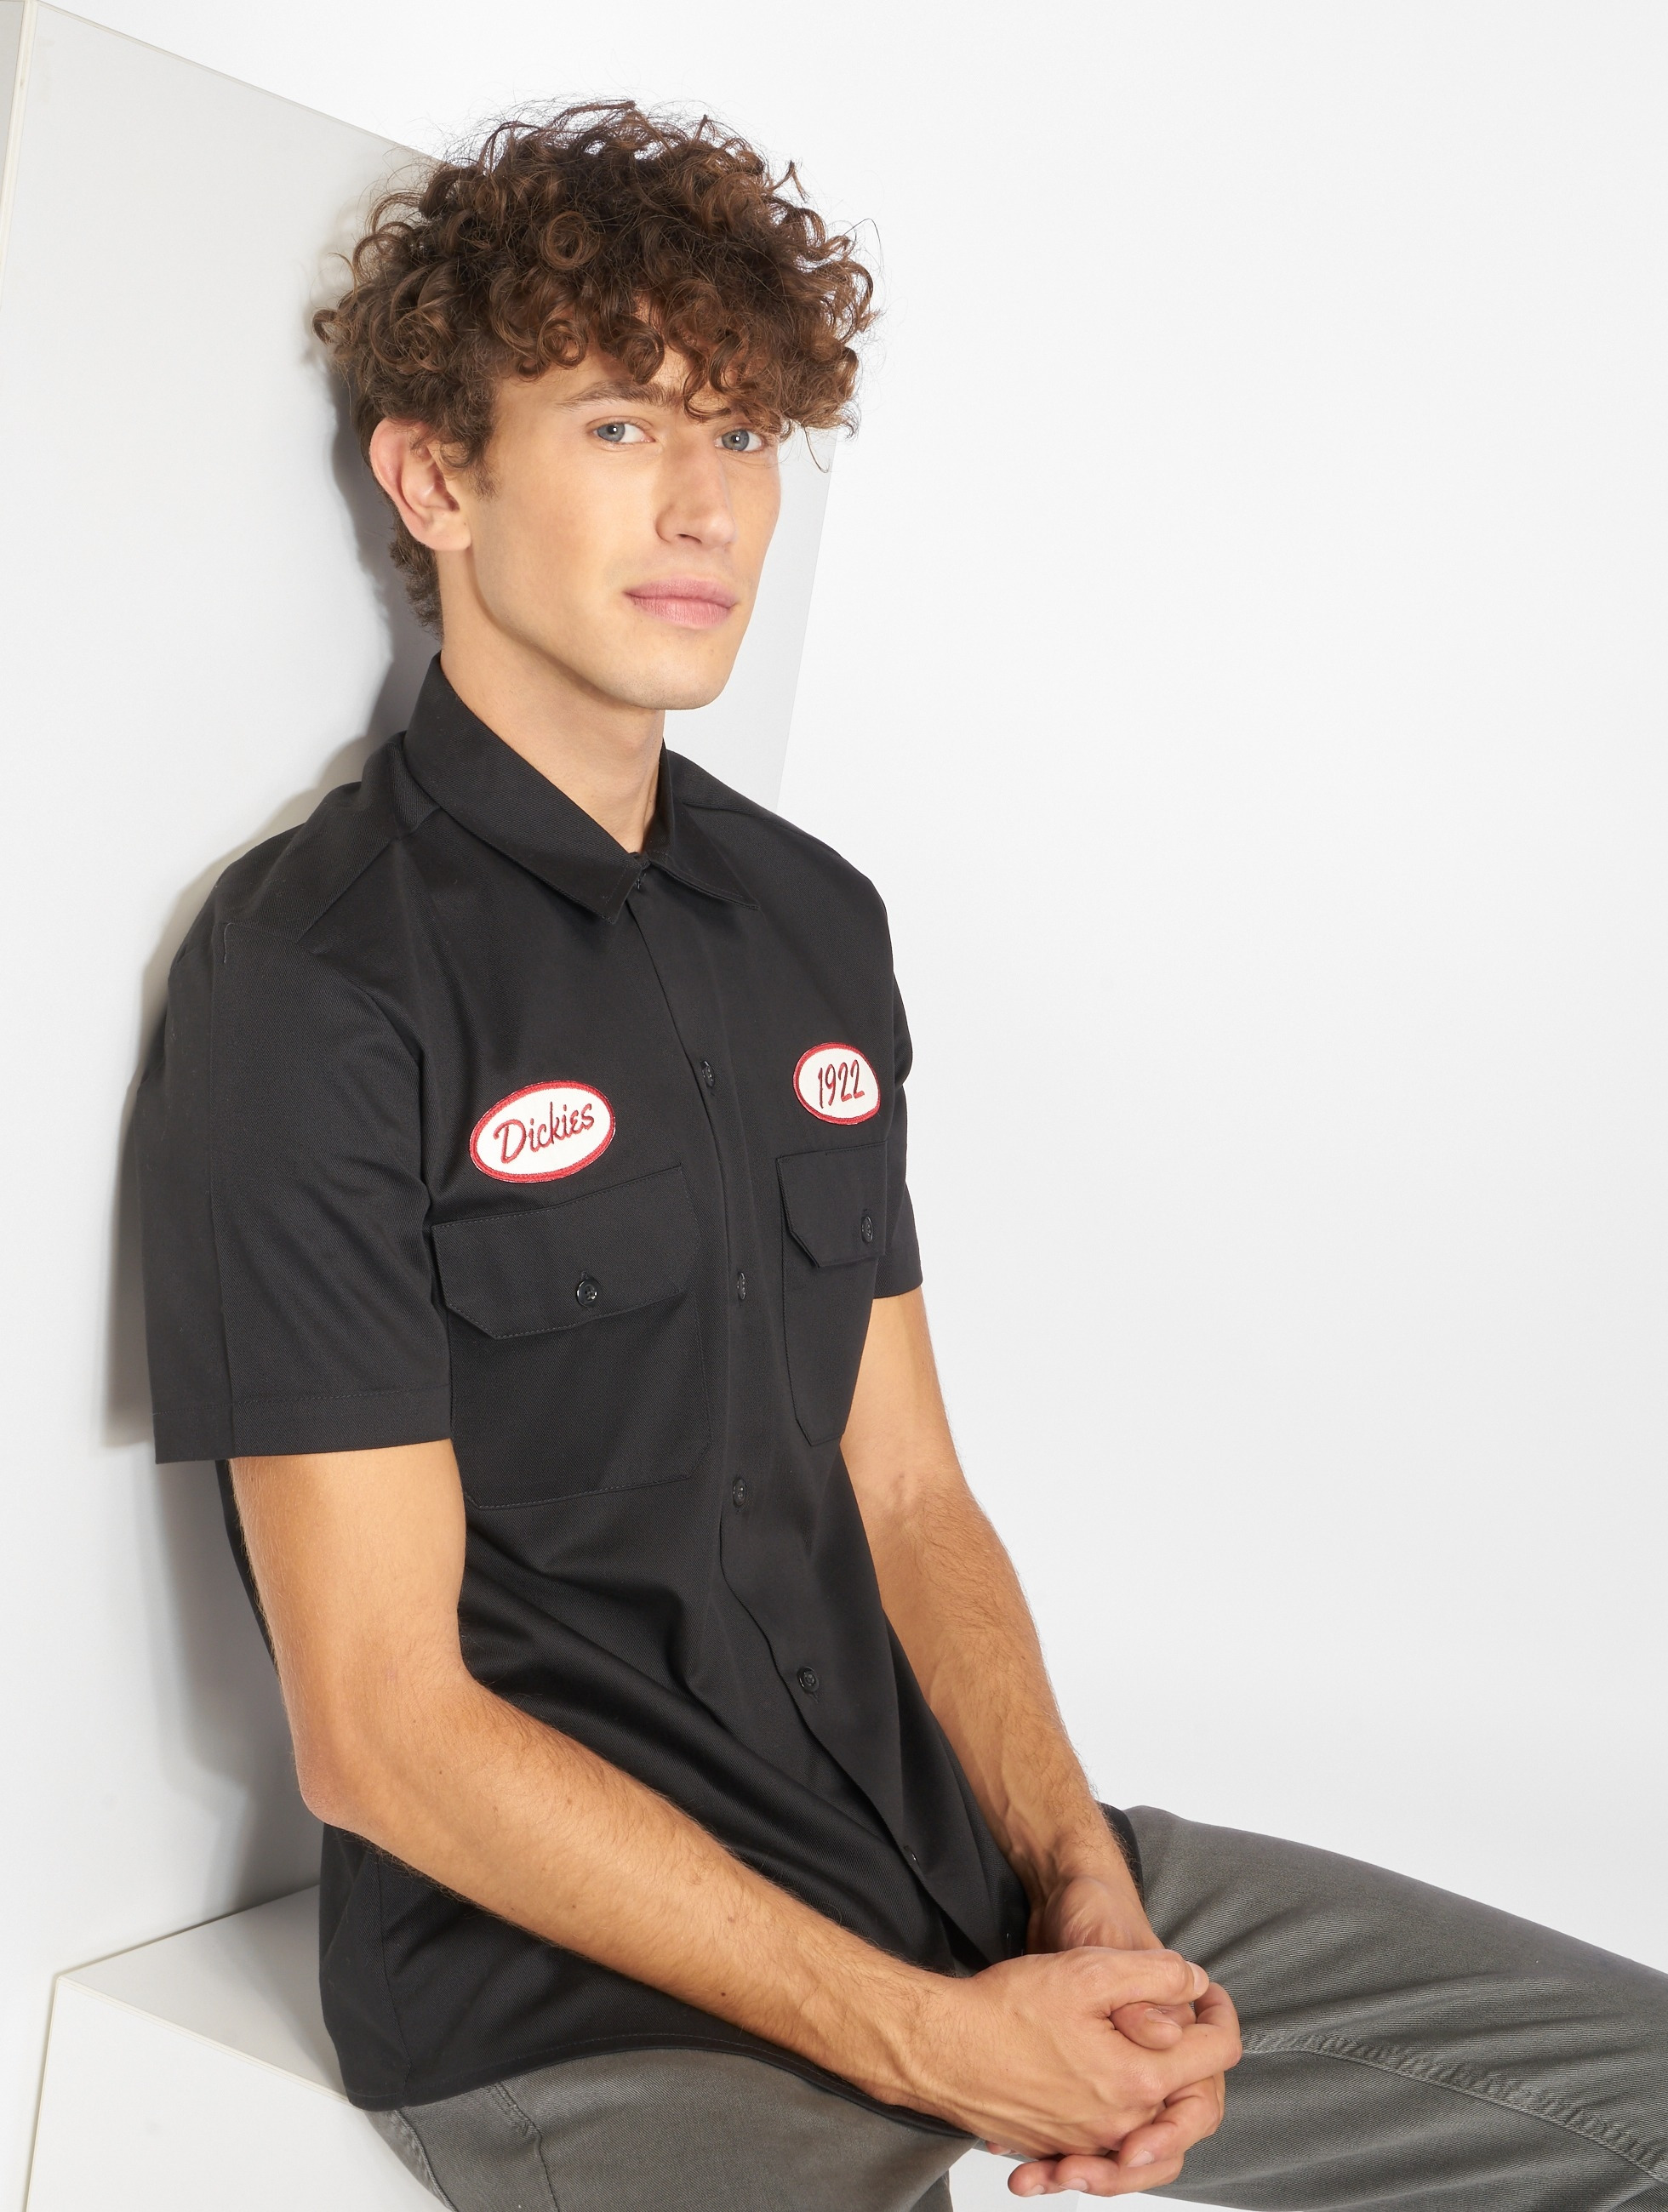 Dickies Rotonda South Shirt Black Sale Angebote Hosena